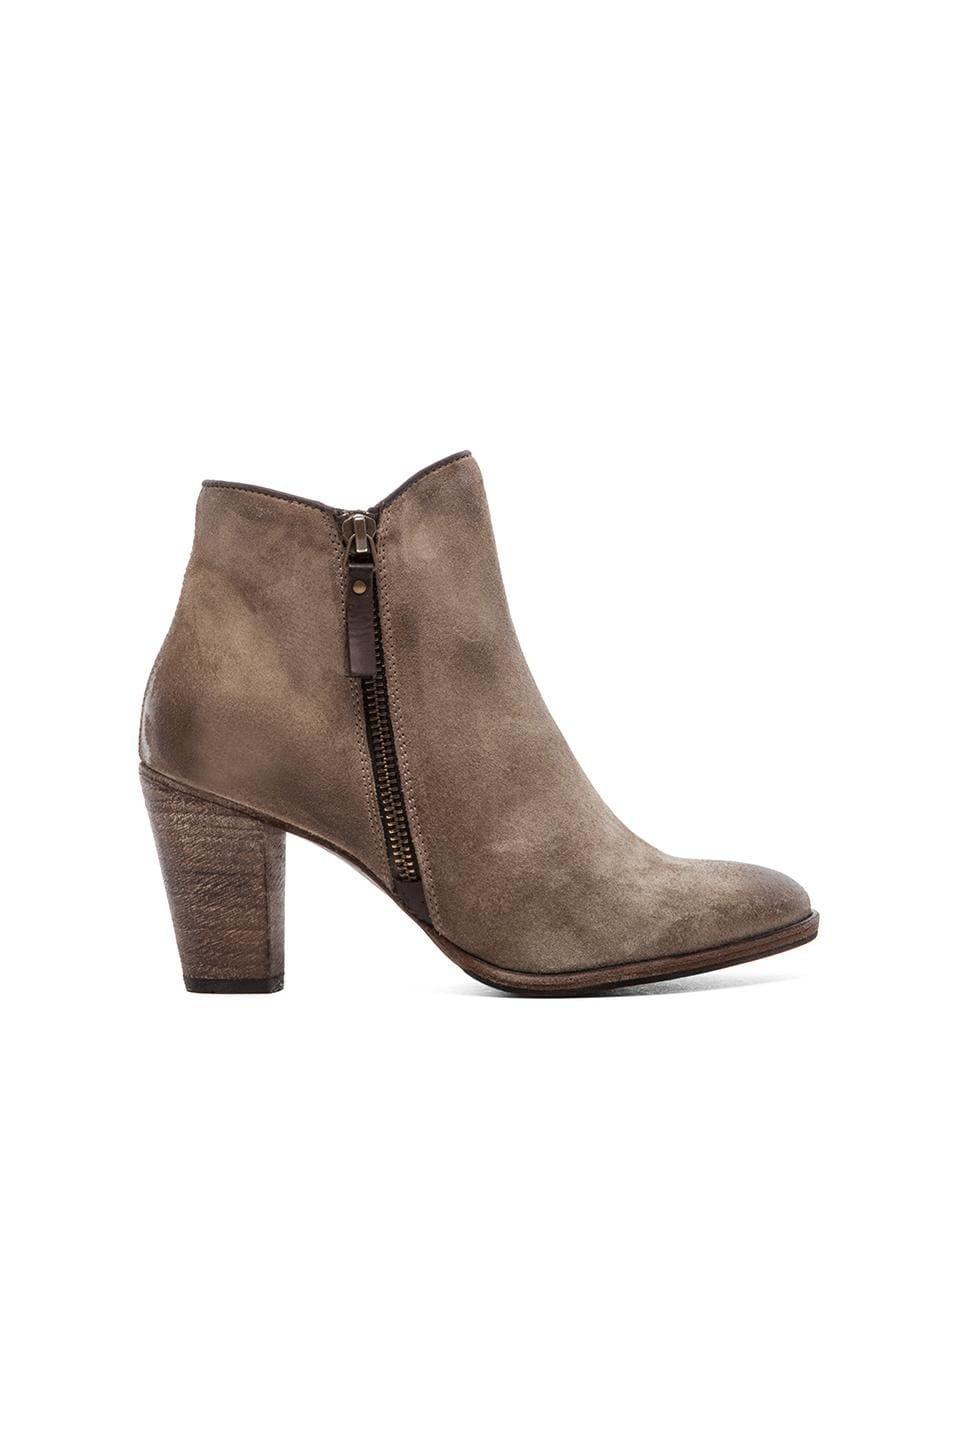 n.d.c Snyder Bootie in Flint